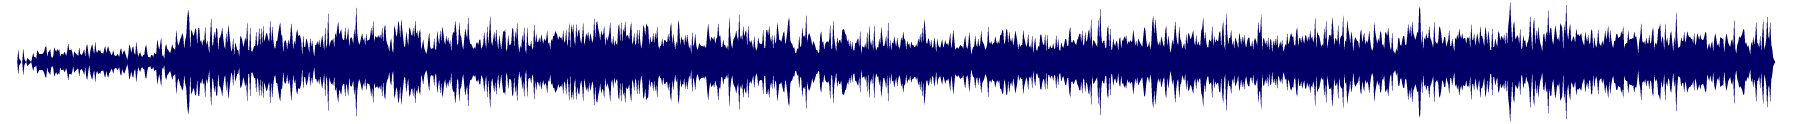 waveform of track #67982